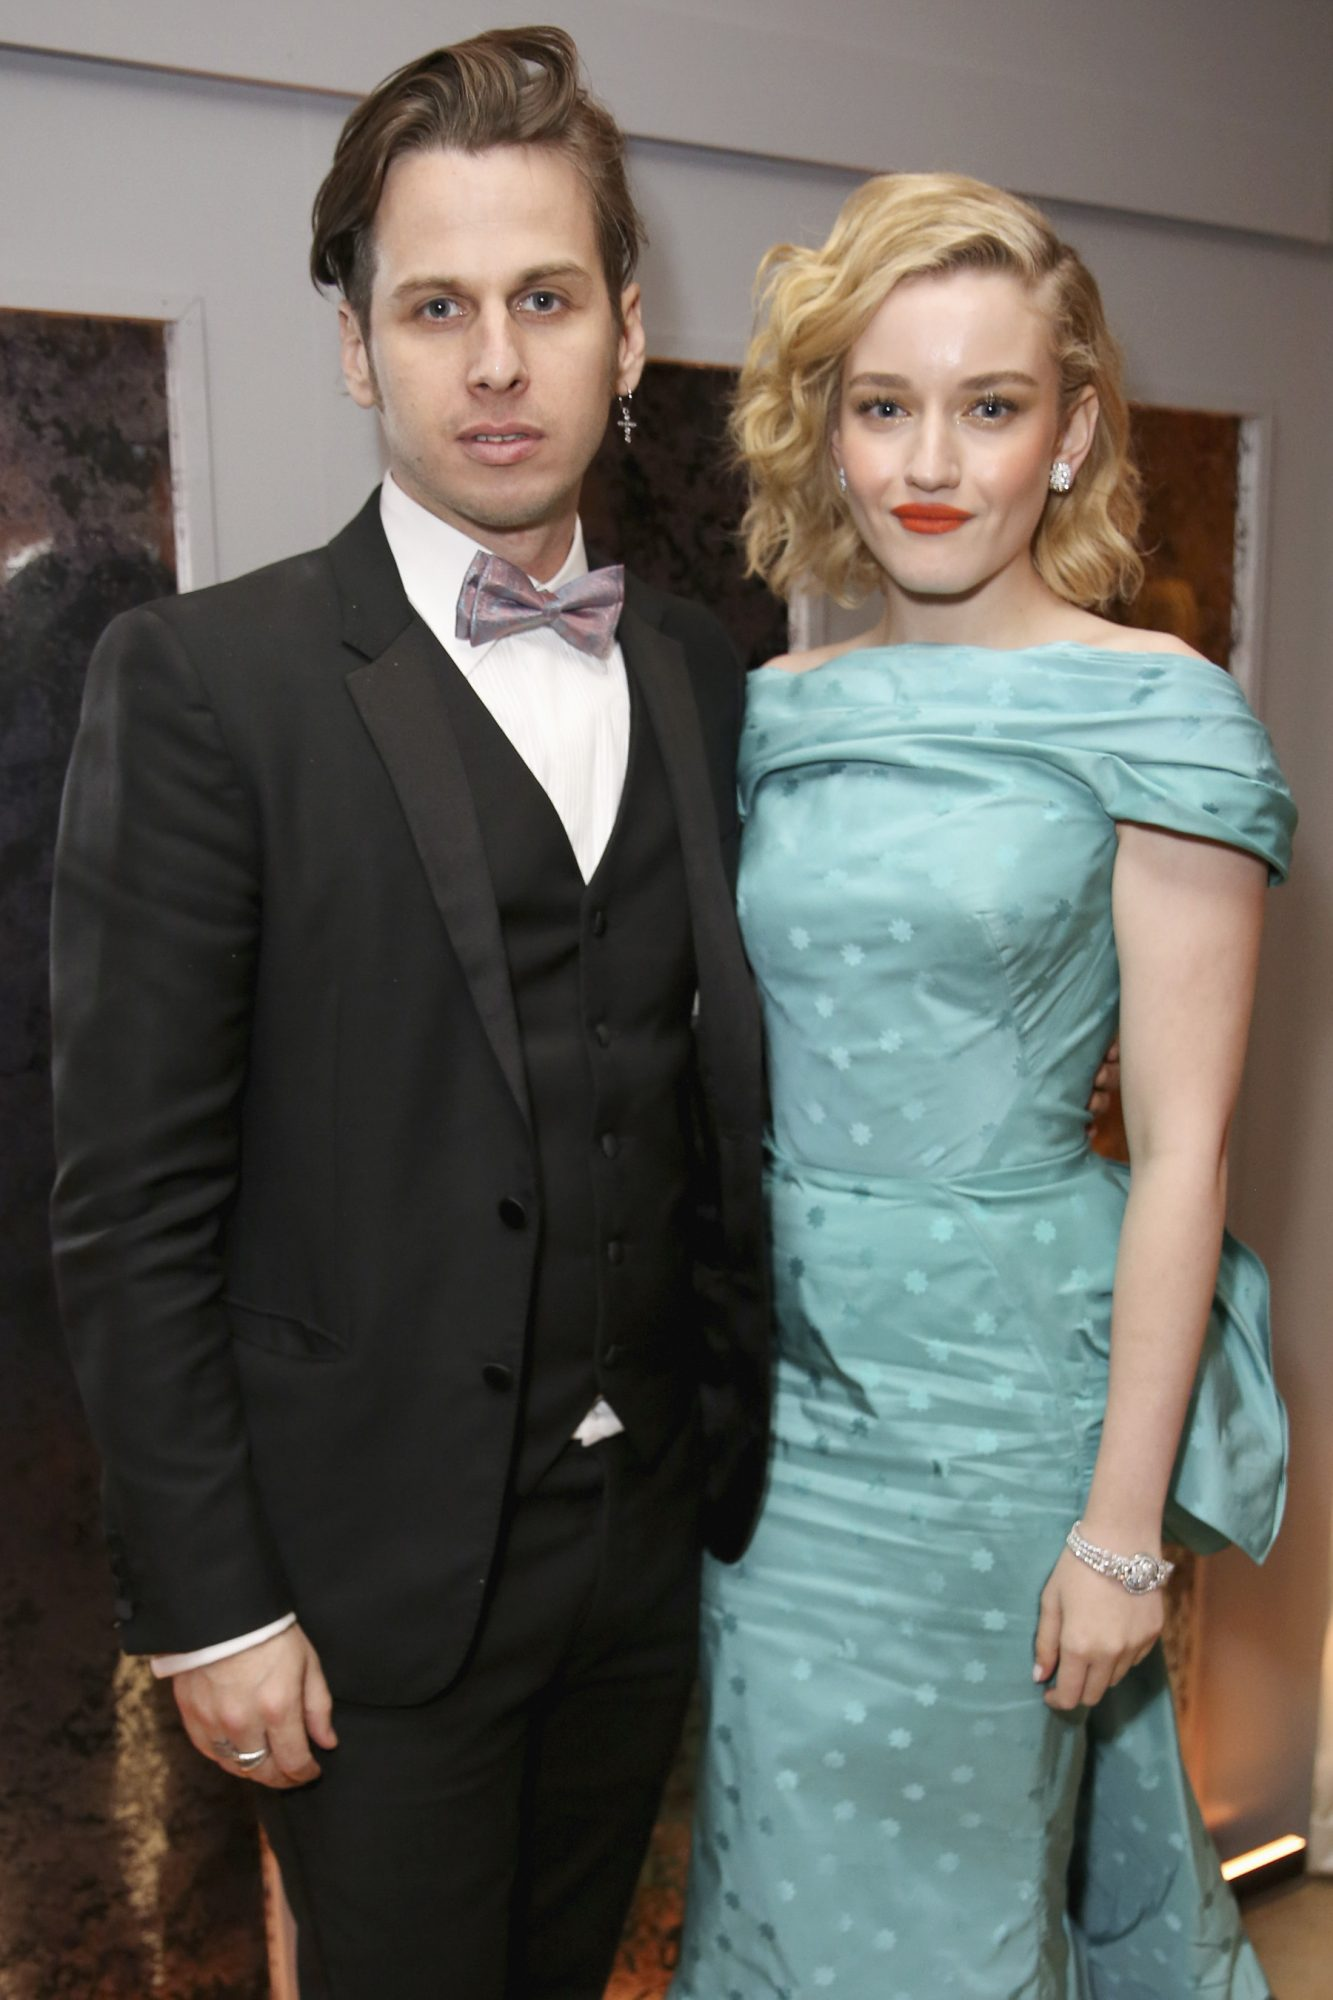 WEST HOLLYWOOD, CA - JANUARY 27: Mark Foster and Julia Garner attend Netflix 2019 SAG Awards after party at Sunset Tower Hotel on January 27, 2019 in West Hollywood, California. (Photo by Rachel Murray/Getty Images for Netflix)